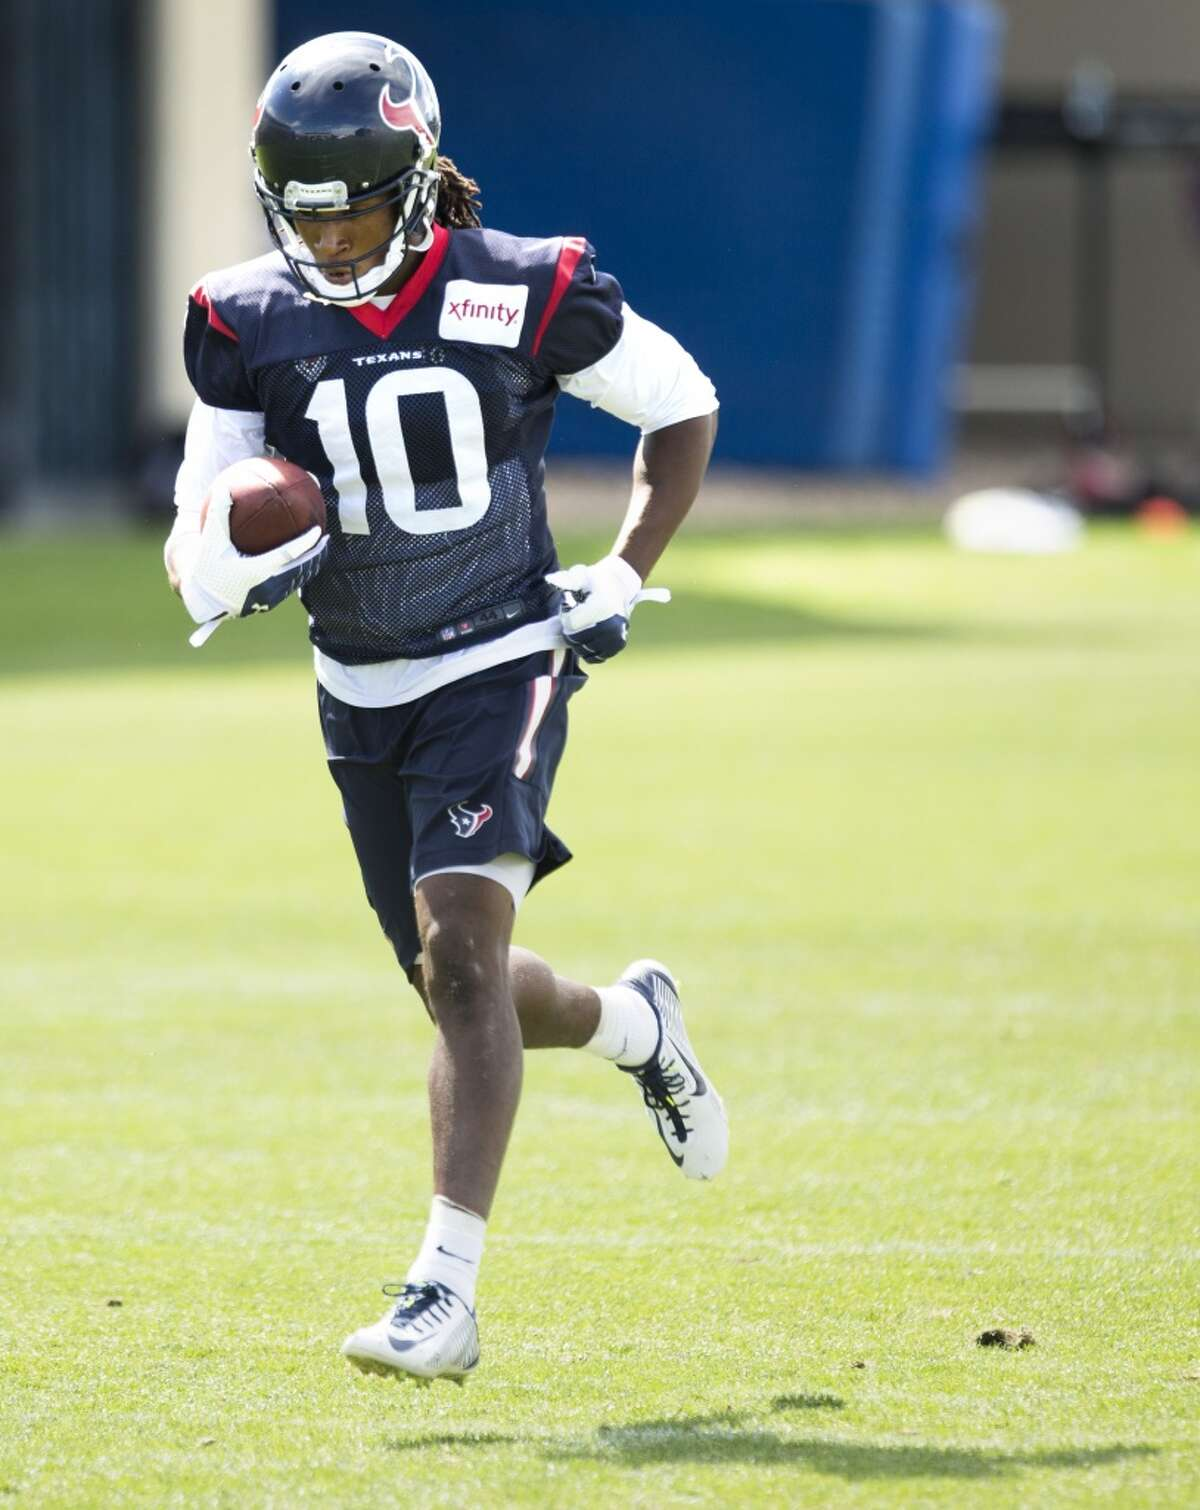 Receiver DeAndre Hopkins Dating back to the beginning of the offseason program, he's made the kind of improvement expected of young players entering their second seasons. His progress has been consistent and often spectacular. The best indication yet was during three practices with the Broncos. Working against Pro Bowl cornerback Aqib Talib, Hopkins was physical getting off the line of scrimmage and attacking the ball. He didn't let Talib frustrate him. He took the ball away from Talib more often than not, and the veteran corner gave him his proper respect. Hopkins has improved as a route runner. His ball skills are tremendous. He's got quick, strong hands. His leaping ability is superb. Watching him work the sideline and the back of the end zone against the Broncos to make one catch after another was amazing.